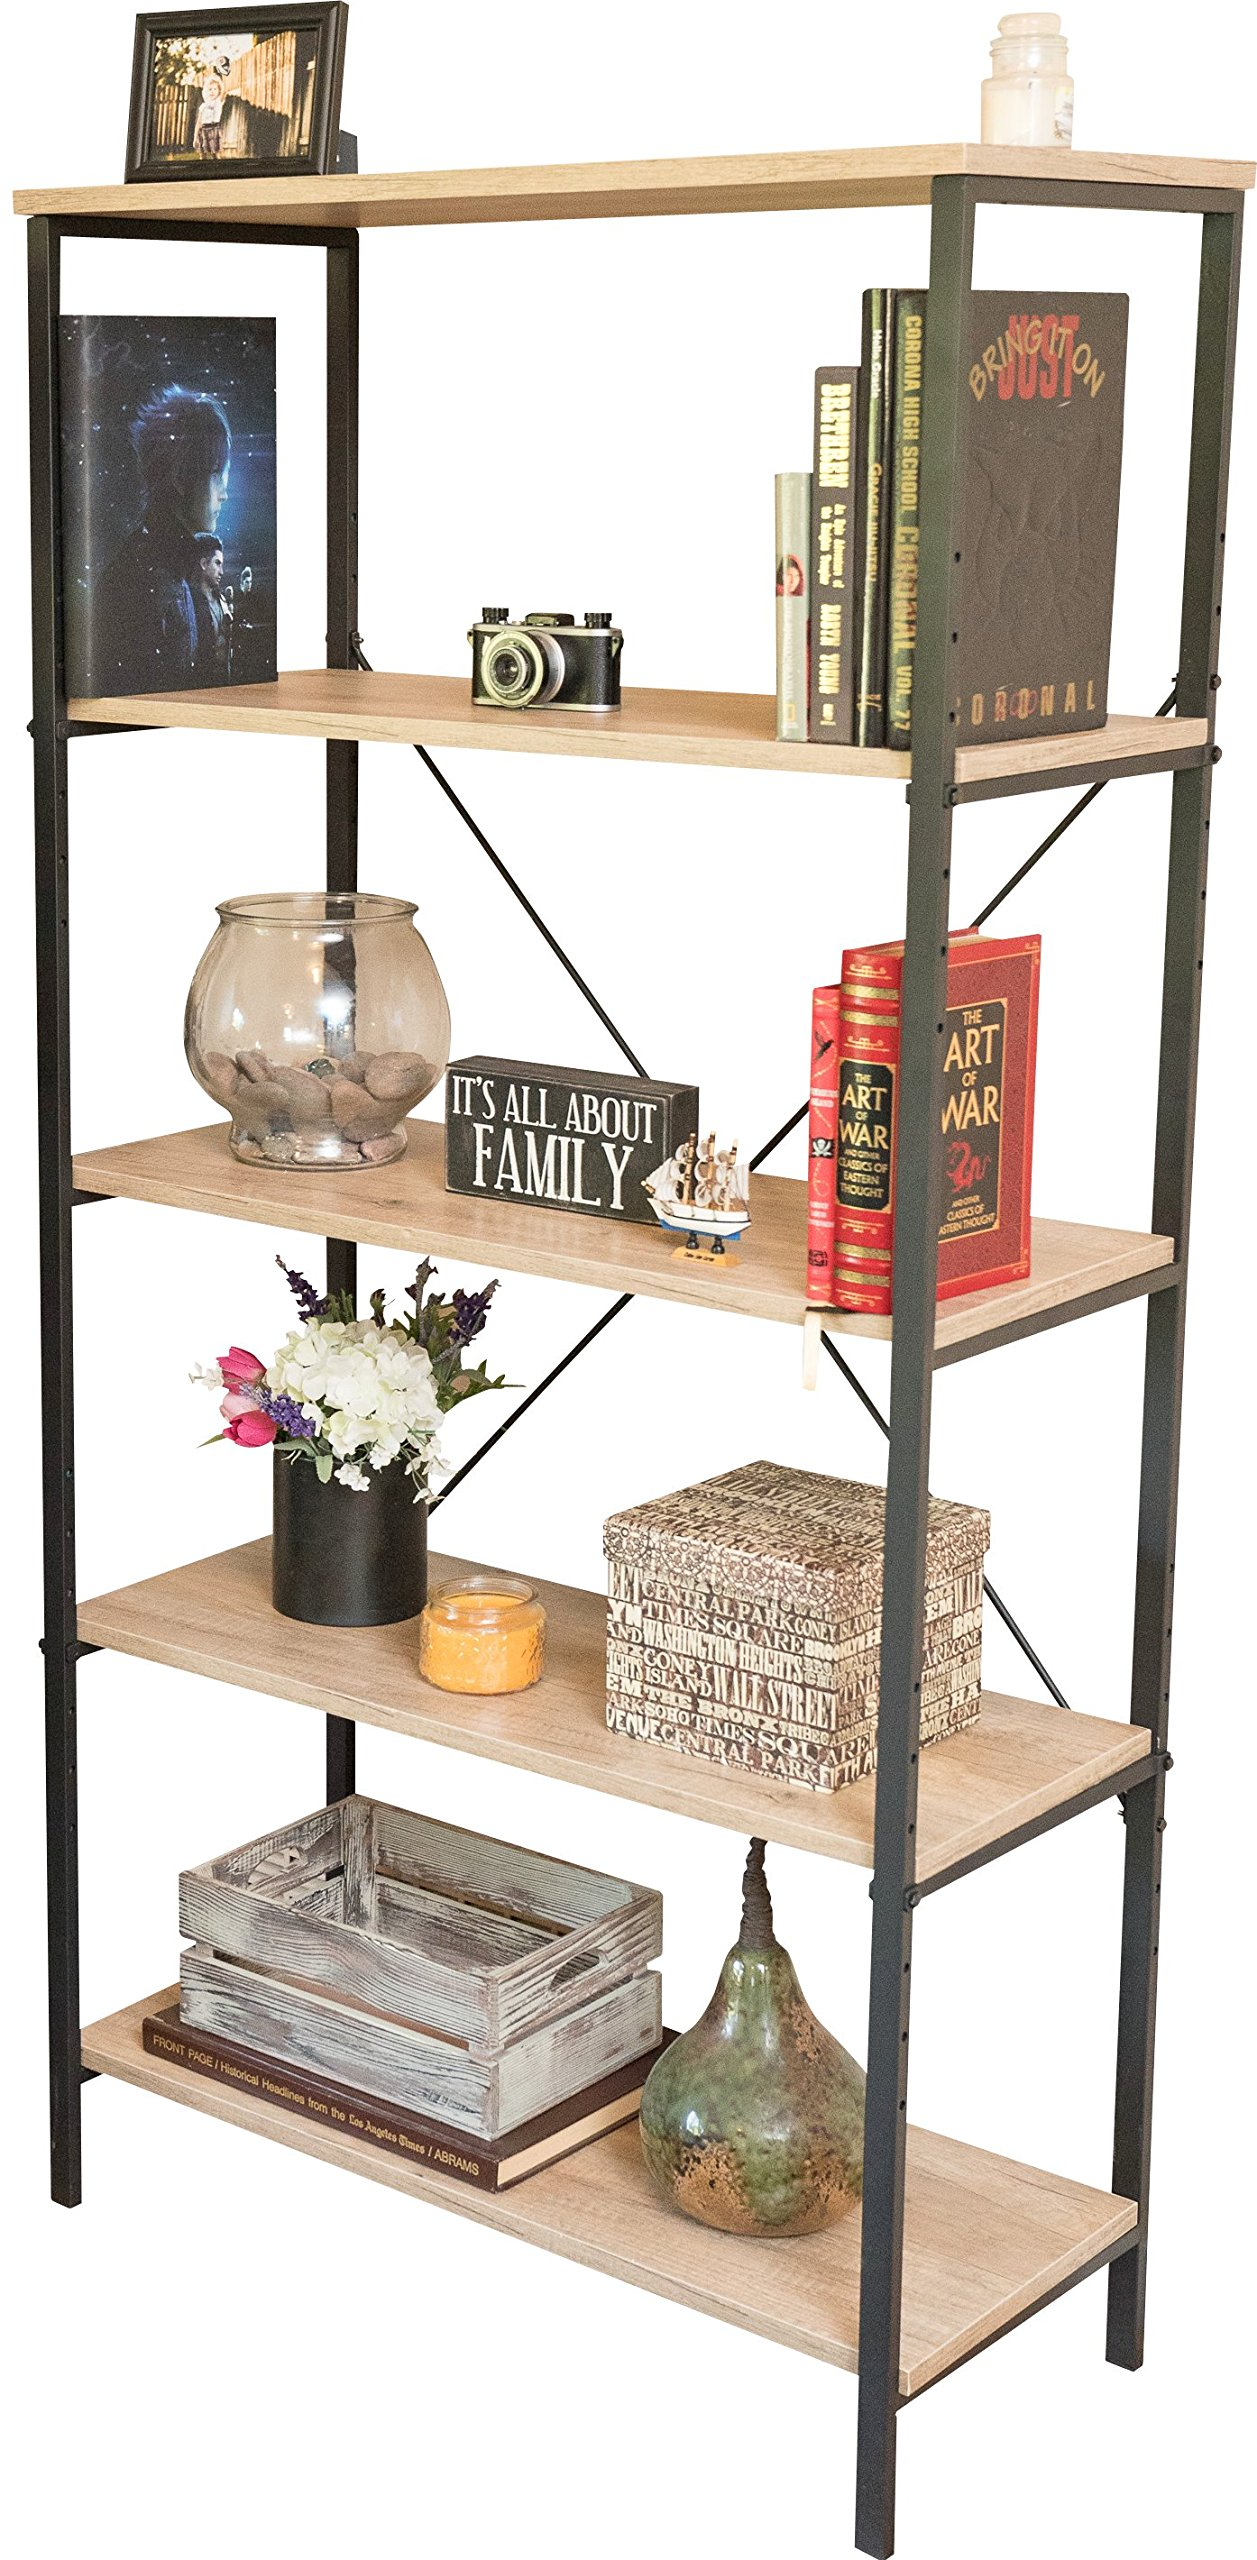 Sleekform Bookshelf | Vintage Industrial Rustic Style Open 5 Shelf Bookcase | Solid Wood Shelving Unit for Home or Office